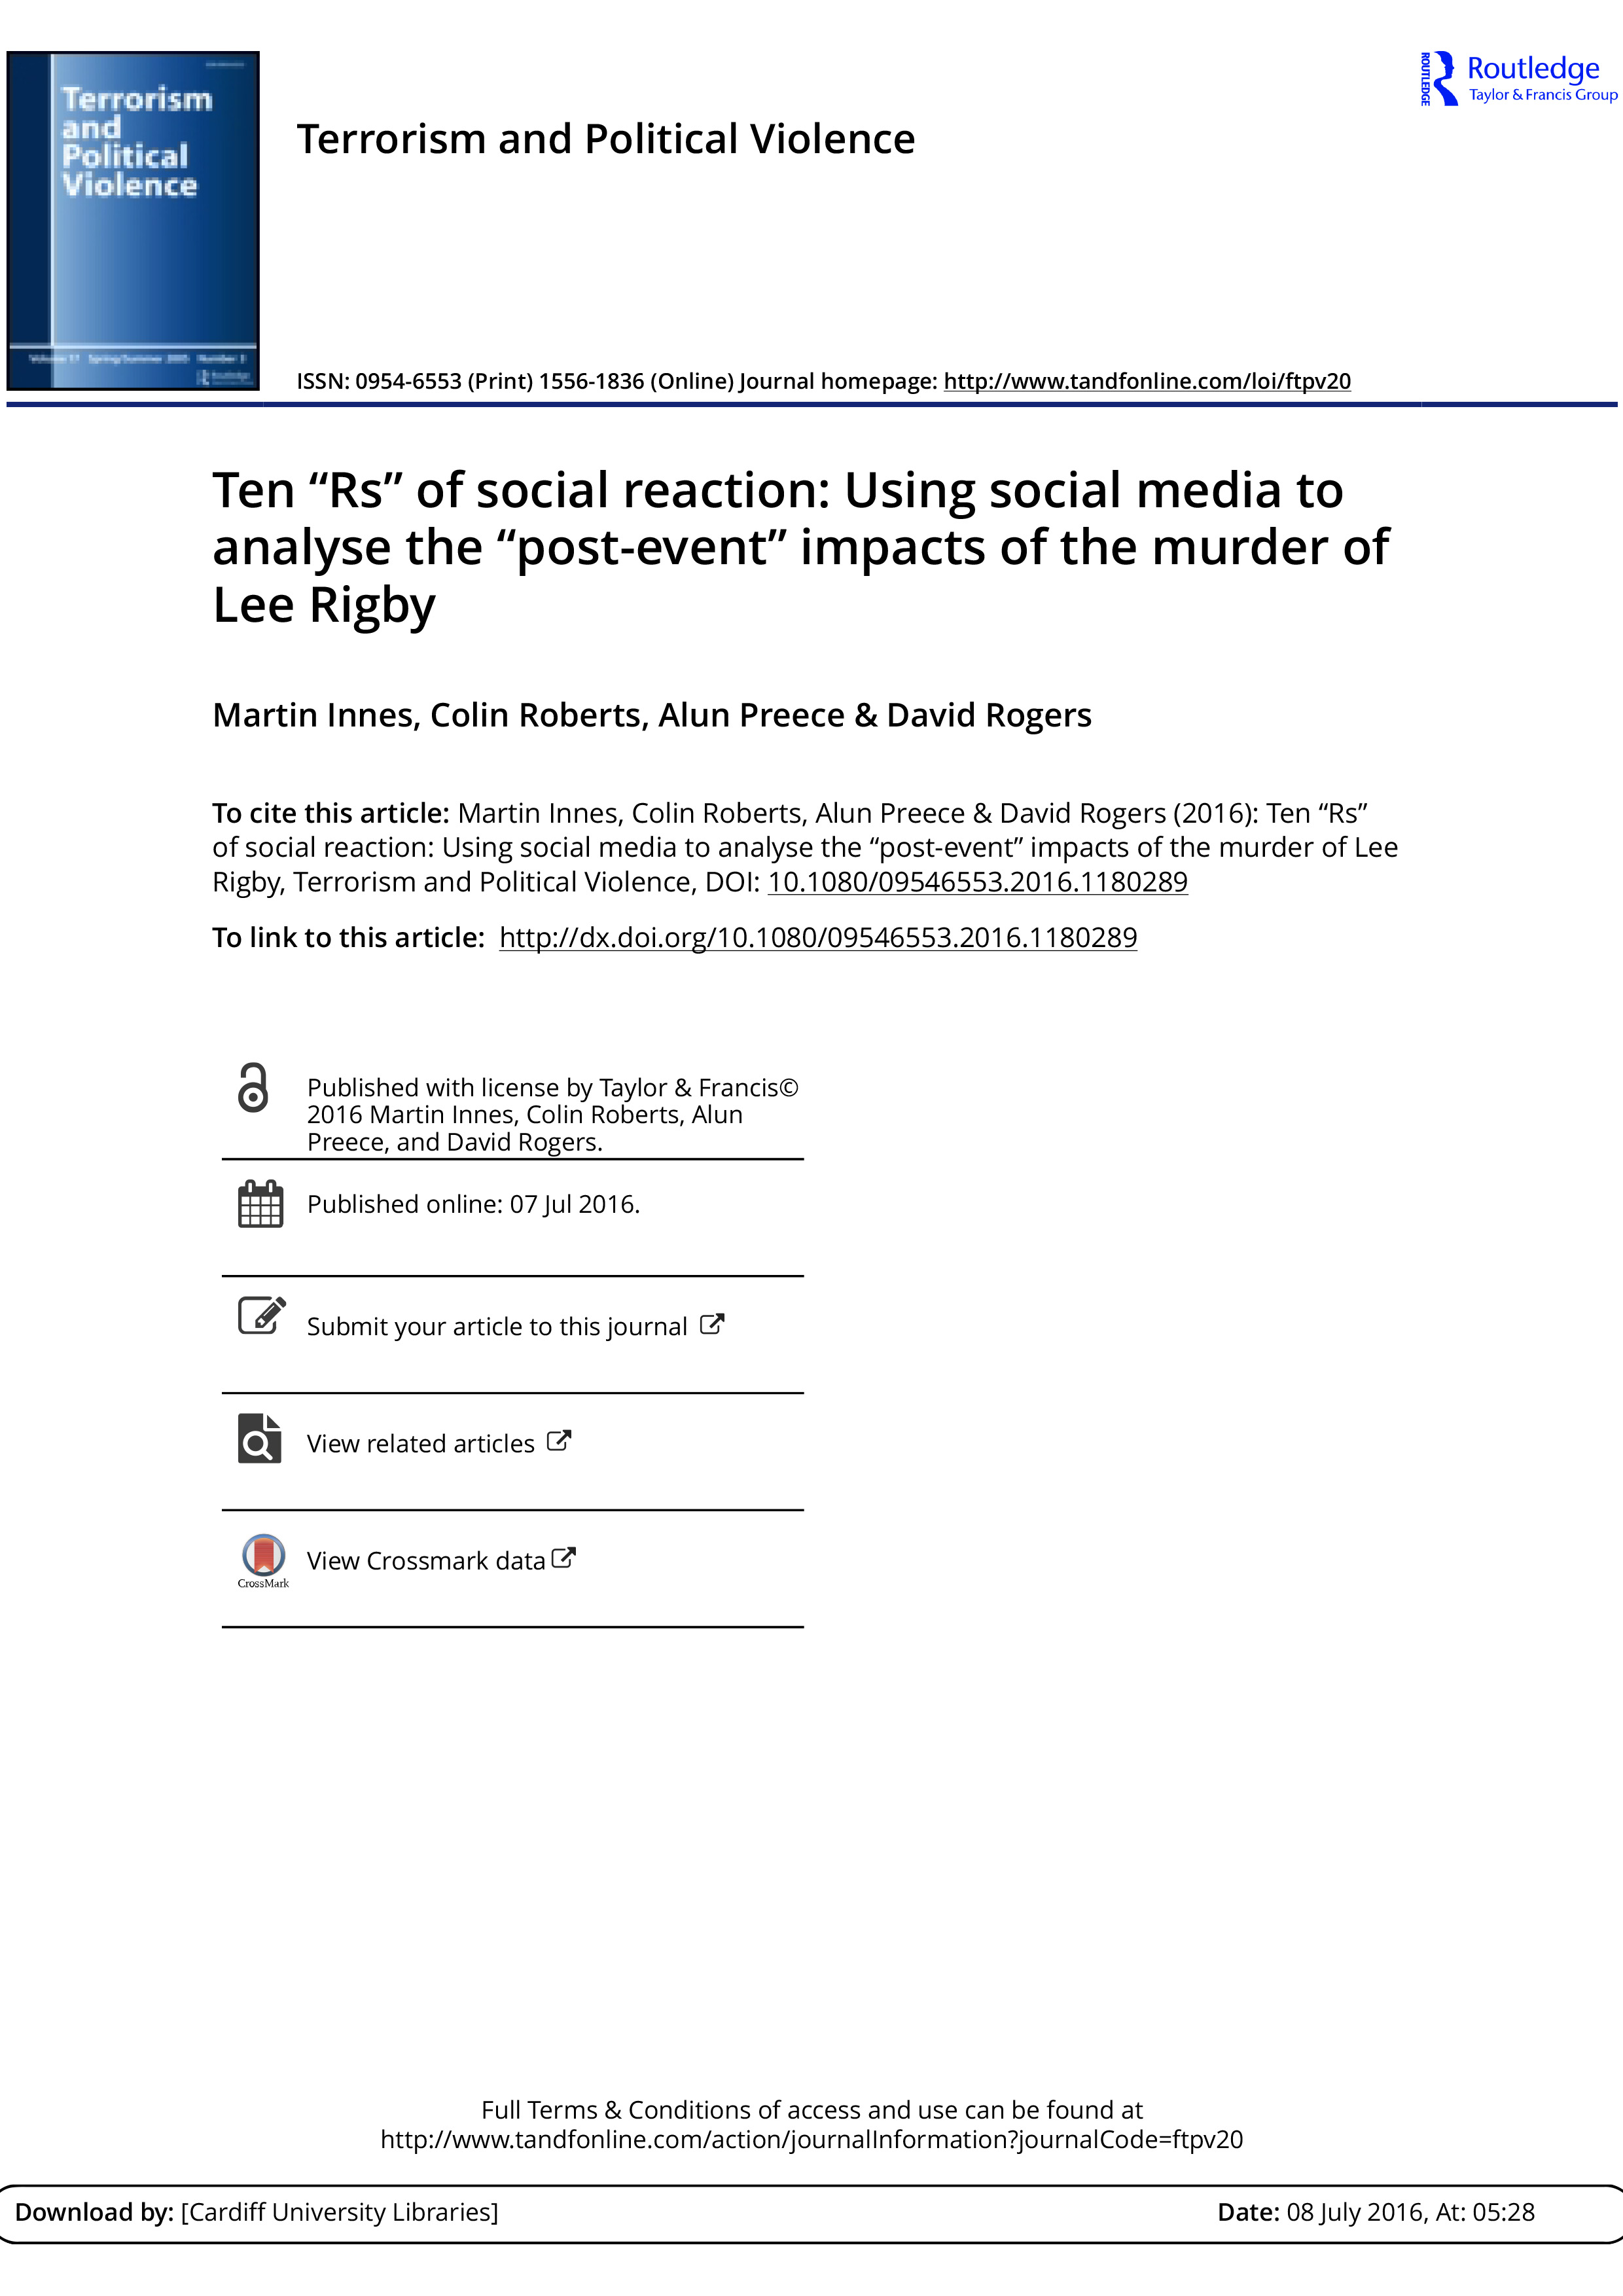 """Ten """"Rs"""" of Social Reaction: Using Social Media to Analyse the """"Post-event"""" Impacts of the Murder of Lee Rigby"""